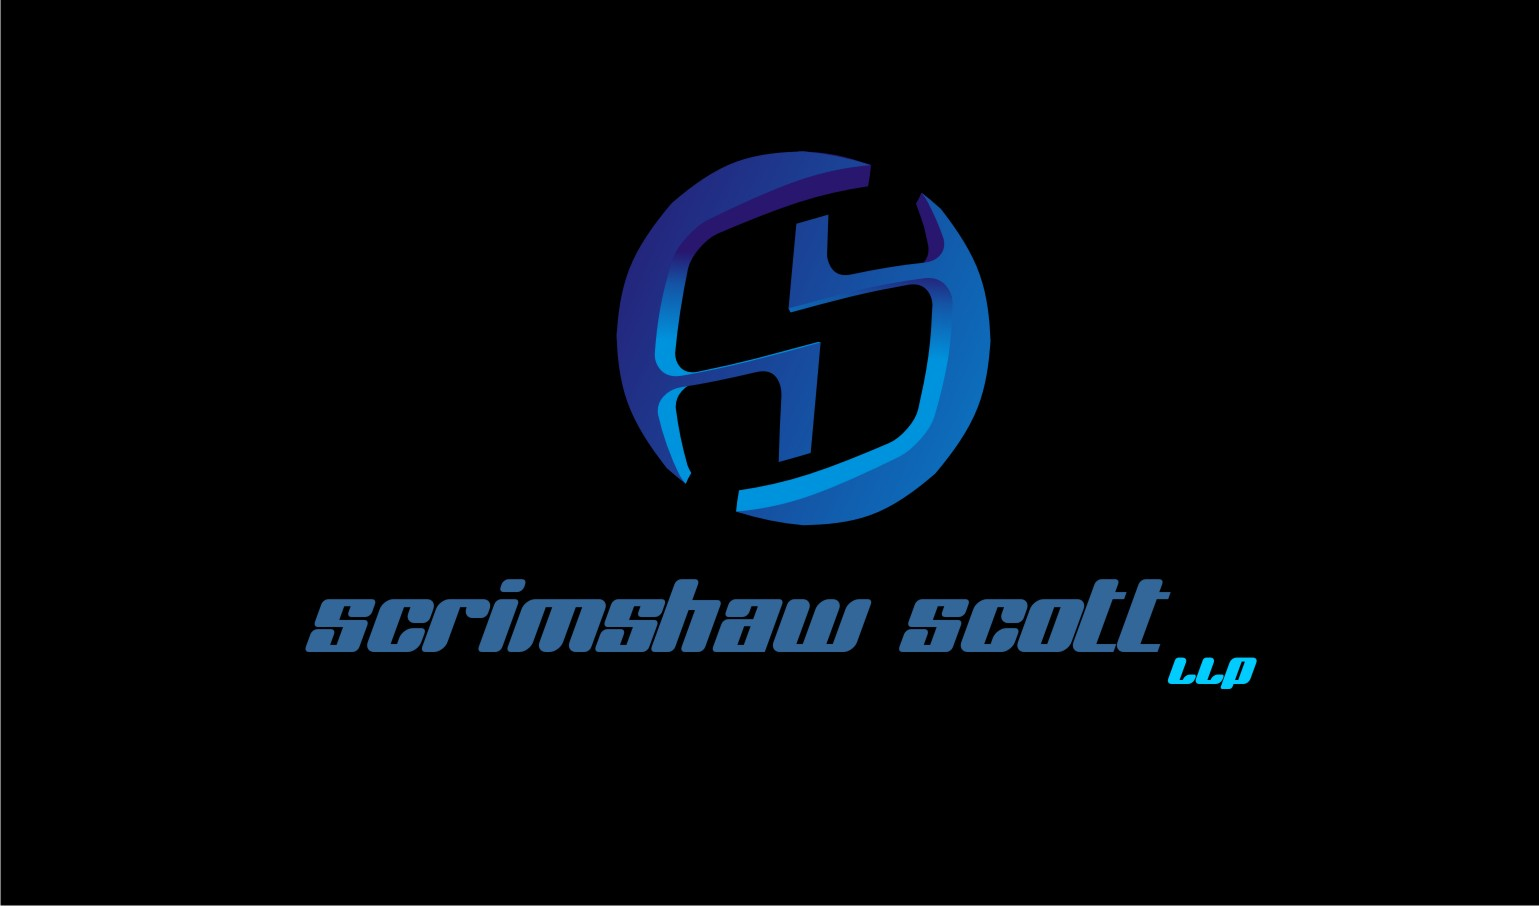 Logo Design by Choirul Jcd - Entry No. 47 in the Logo Design Contest Creative Logo Design for Scrimshaw Scott LLP.